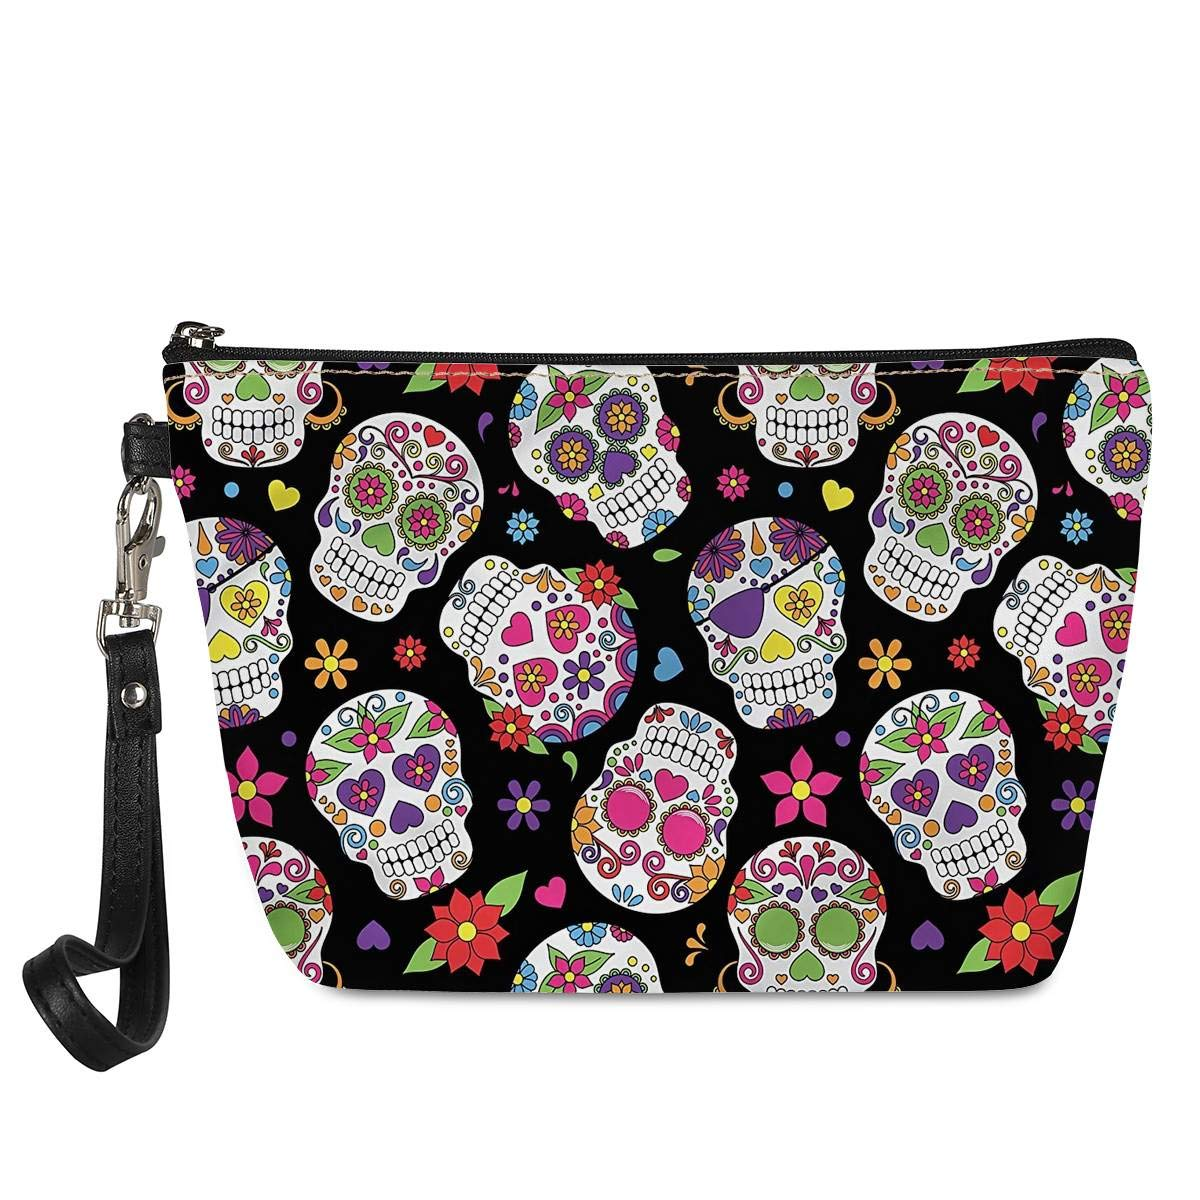 Mumeson Cool Sugar Skulls Print Women Protable Wristlet Cosmetic Pouch PU Leather Waterproof Makeup Clutch Bag